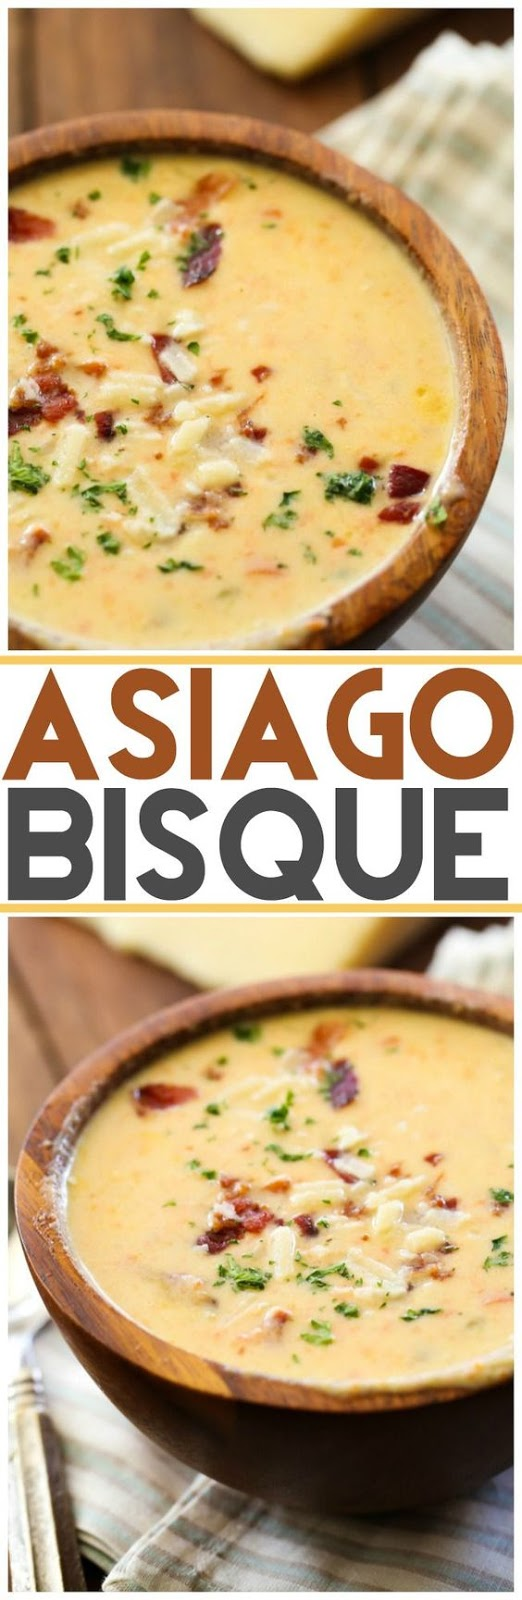 Asiago Bisque   #DESSERTS #HEALTHYFOOD #EASYRECIPES #DINNER #LAUCH #DELICIOUS #EASY #HOLIDAYS #RECIPE #SPECIALDIET #WORLDCUISINE #CAKE #APPETIZERS #HEALTHYRECIPES #DRINKS #COOKINGMETHOD #ITALIANRECIPES #MEAT #VEGANRECIPES #COOKIES #PASTA #FRUIT #SALAD #SOUPAPPETIZERS #NONALCOHOLICDRINKS #MEALPLANNING #VEGETABLES #SOUP #PASTRY #CHOCOLATE #DAIRY #ALCOHOLICDRINKS #BULGURSALAD #BAKING #SNACKS #BEEFRECIPES #MEATAPPETIZERS #MEXICANRECIPES #BREAD #ASIANRECIPES #SEAFOODAPPETIZERS #MUFFINS #BREAKFASTANDBRUNCH #CONDIMENTS #CUPCAKES #CHEESE #CHICKENRECIPES #PIE #COFFEE #NOBAKEDESSERTS #HEALTHYSNACKS #SEAFOOD #GRAIN #LUNCHESDINNERS #MEXICAN #QUICKBREAD #LIQUOR